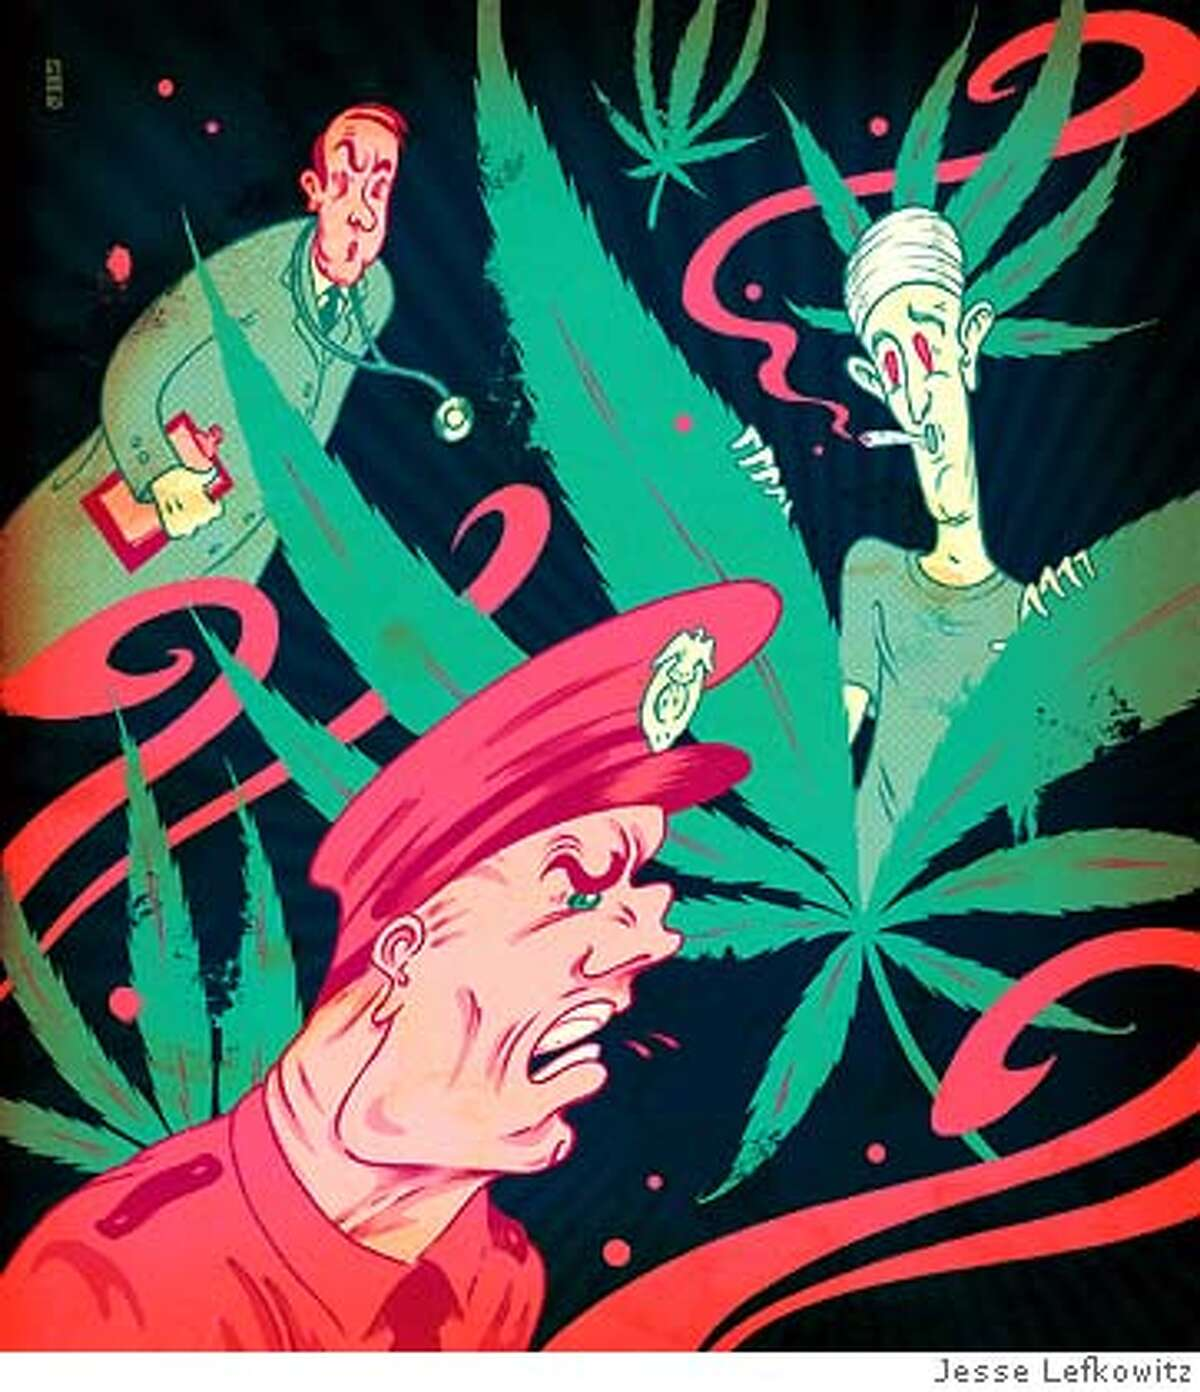 Illustrtion by Jesse Lefkowitz to accompany article by David Rubien about medical marijuana, pot clubs, etc., running in April 22, 2007, issue of Sunday magazine